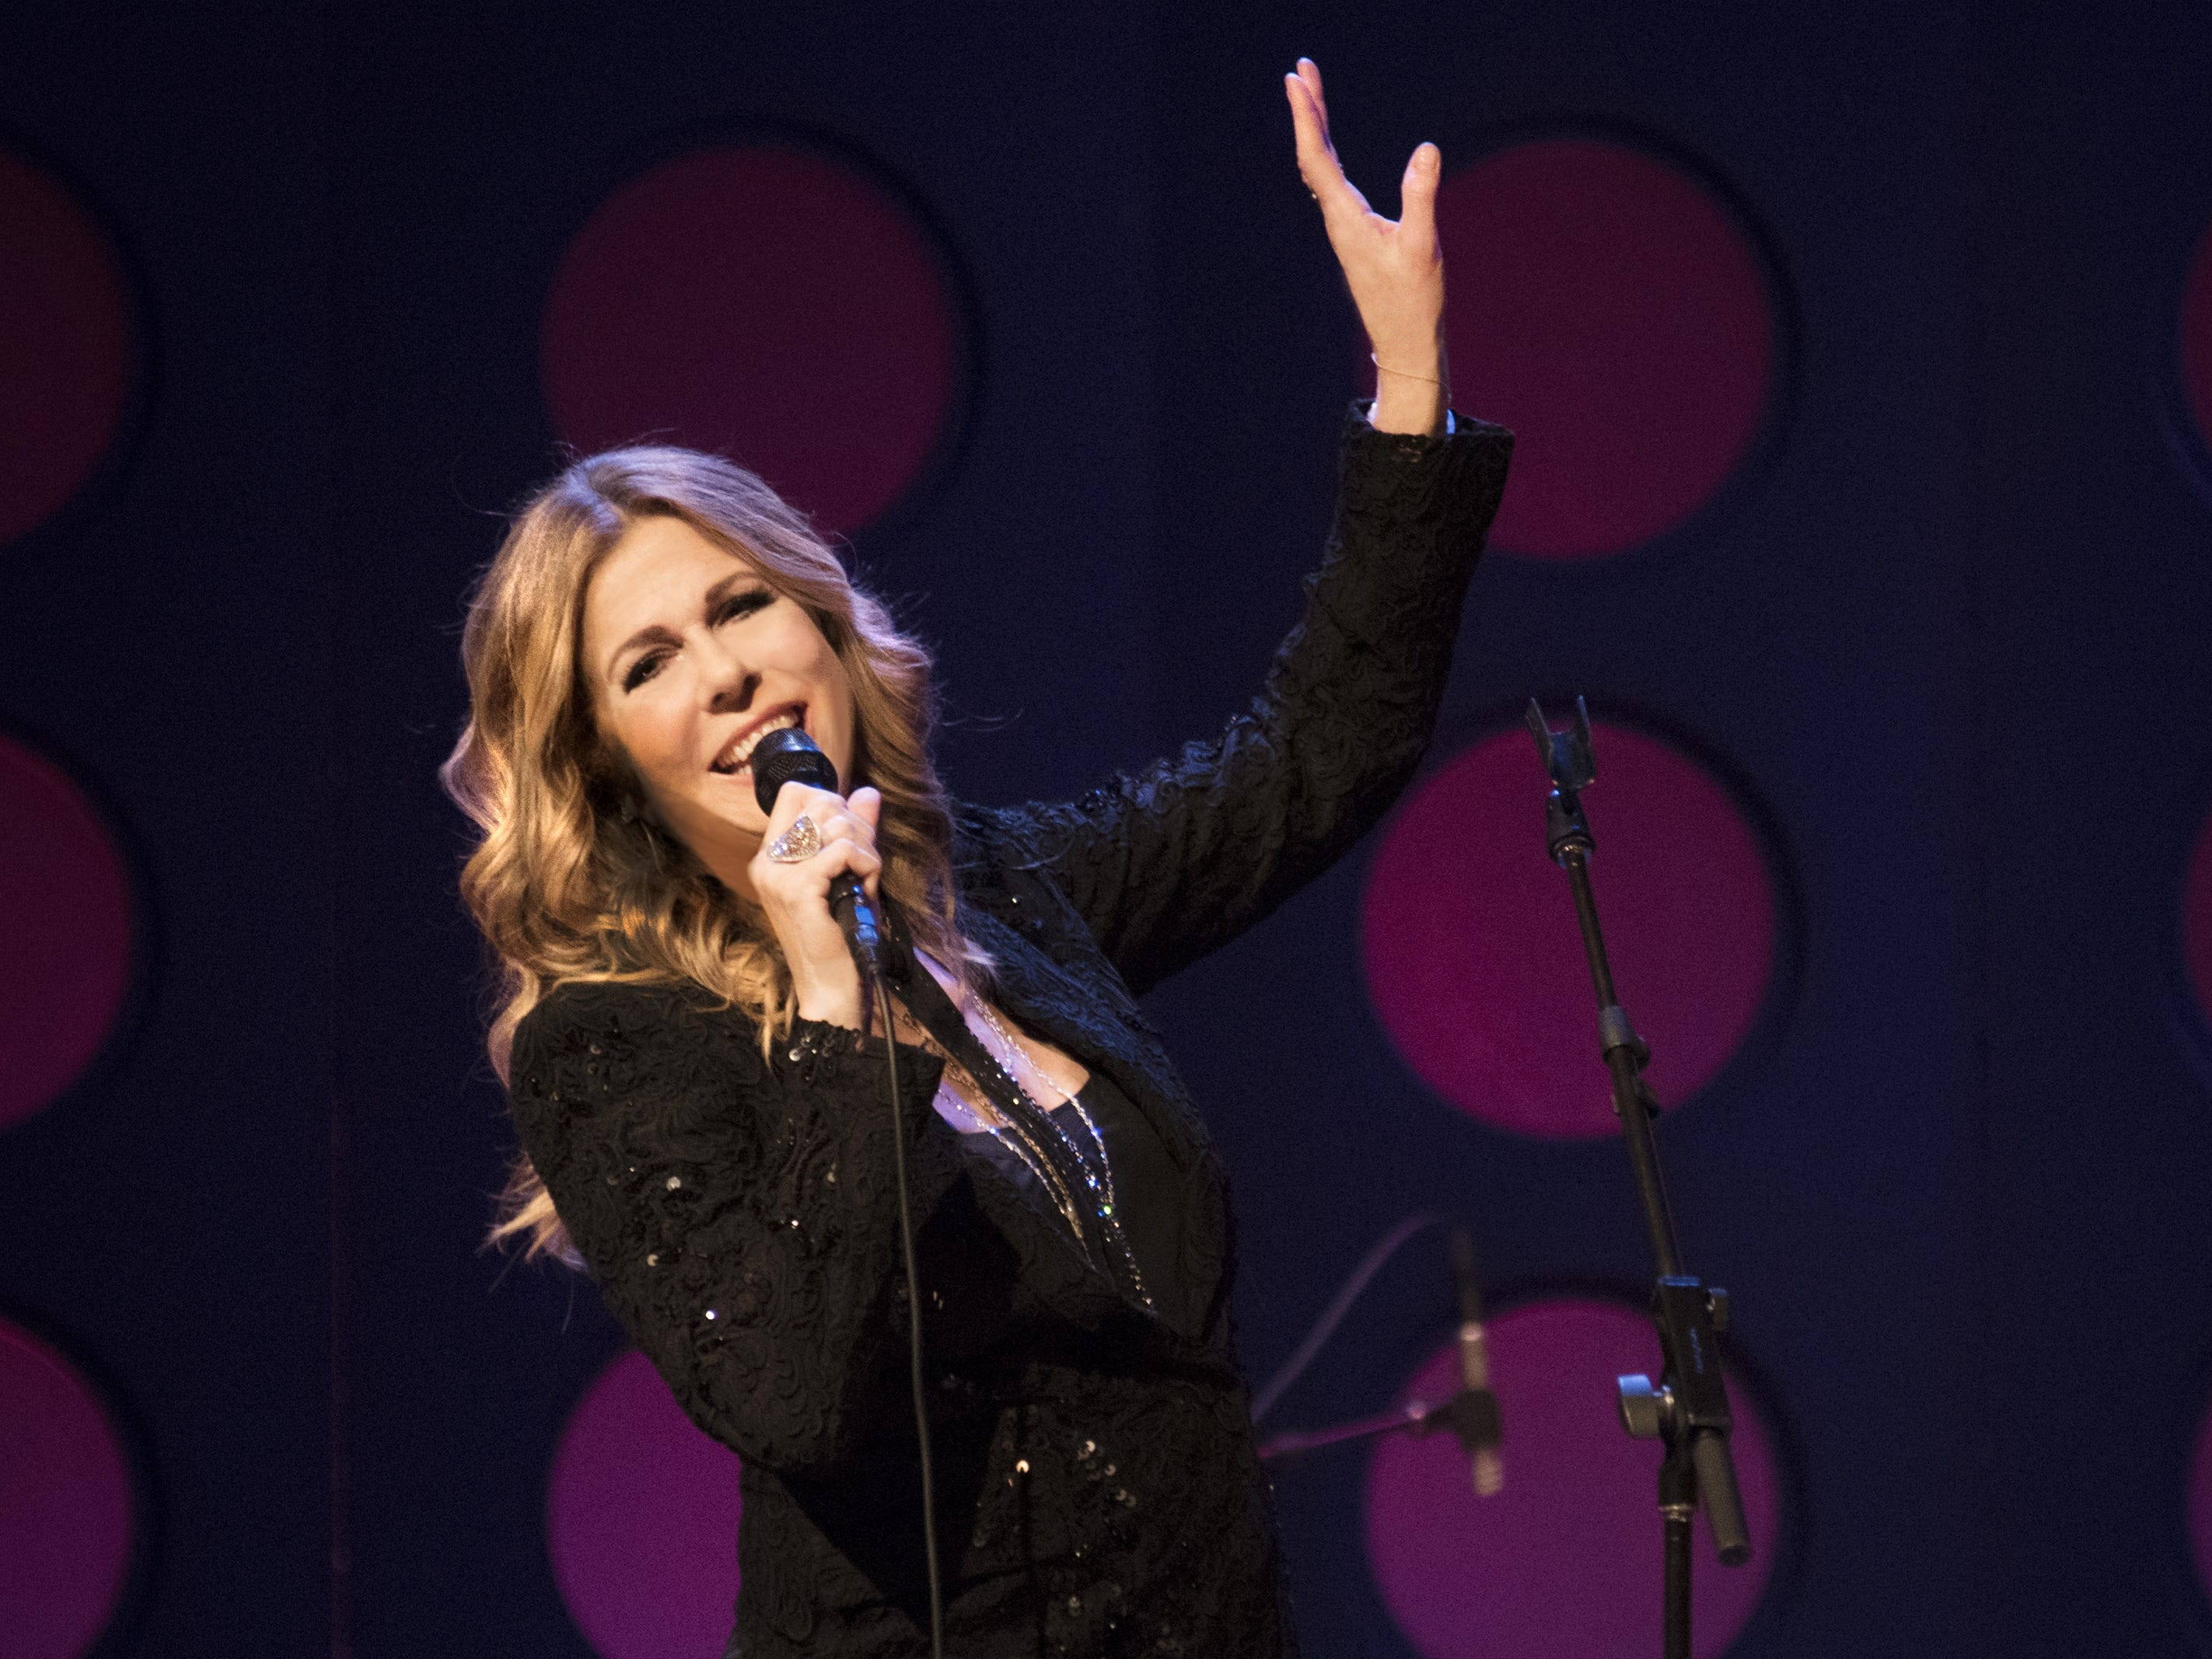 Rita Wilson is scheduled to play the Budweiser Forever Country Stage at CMA Fest 2019.